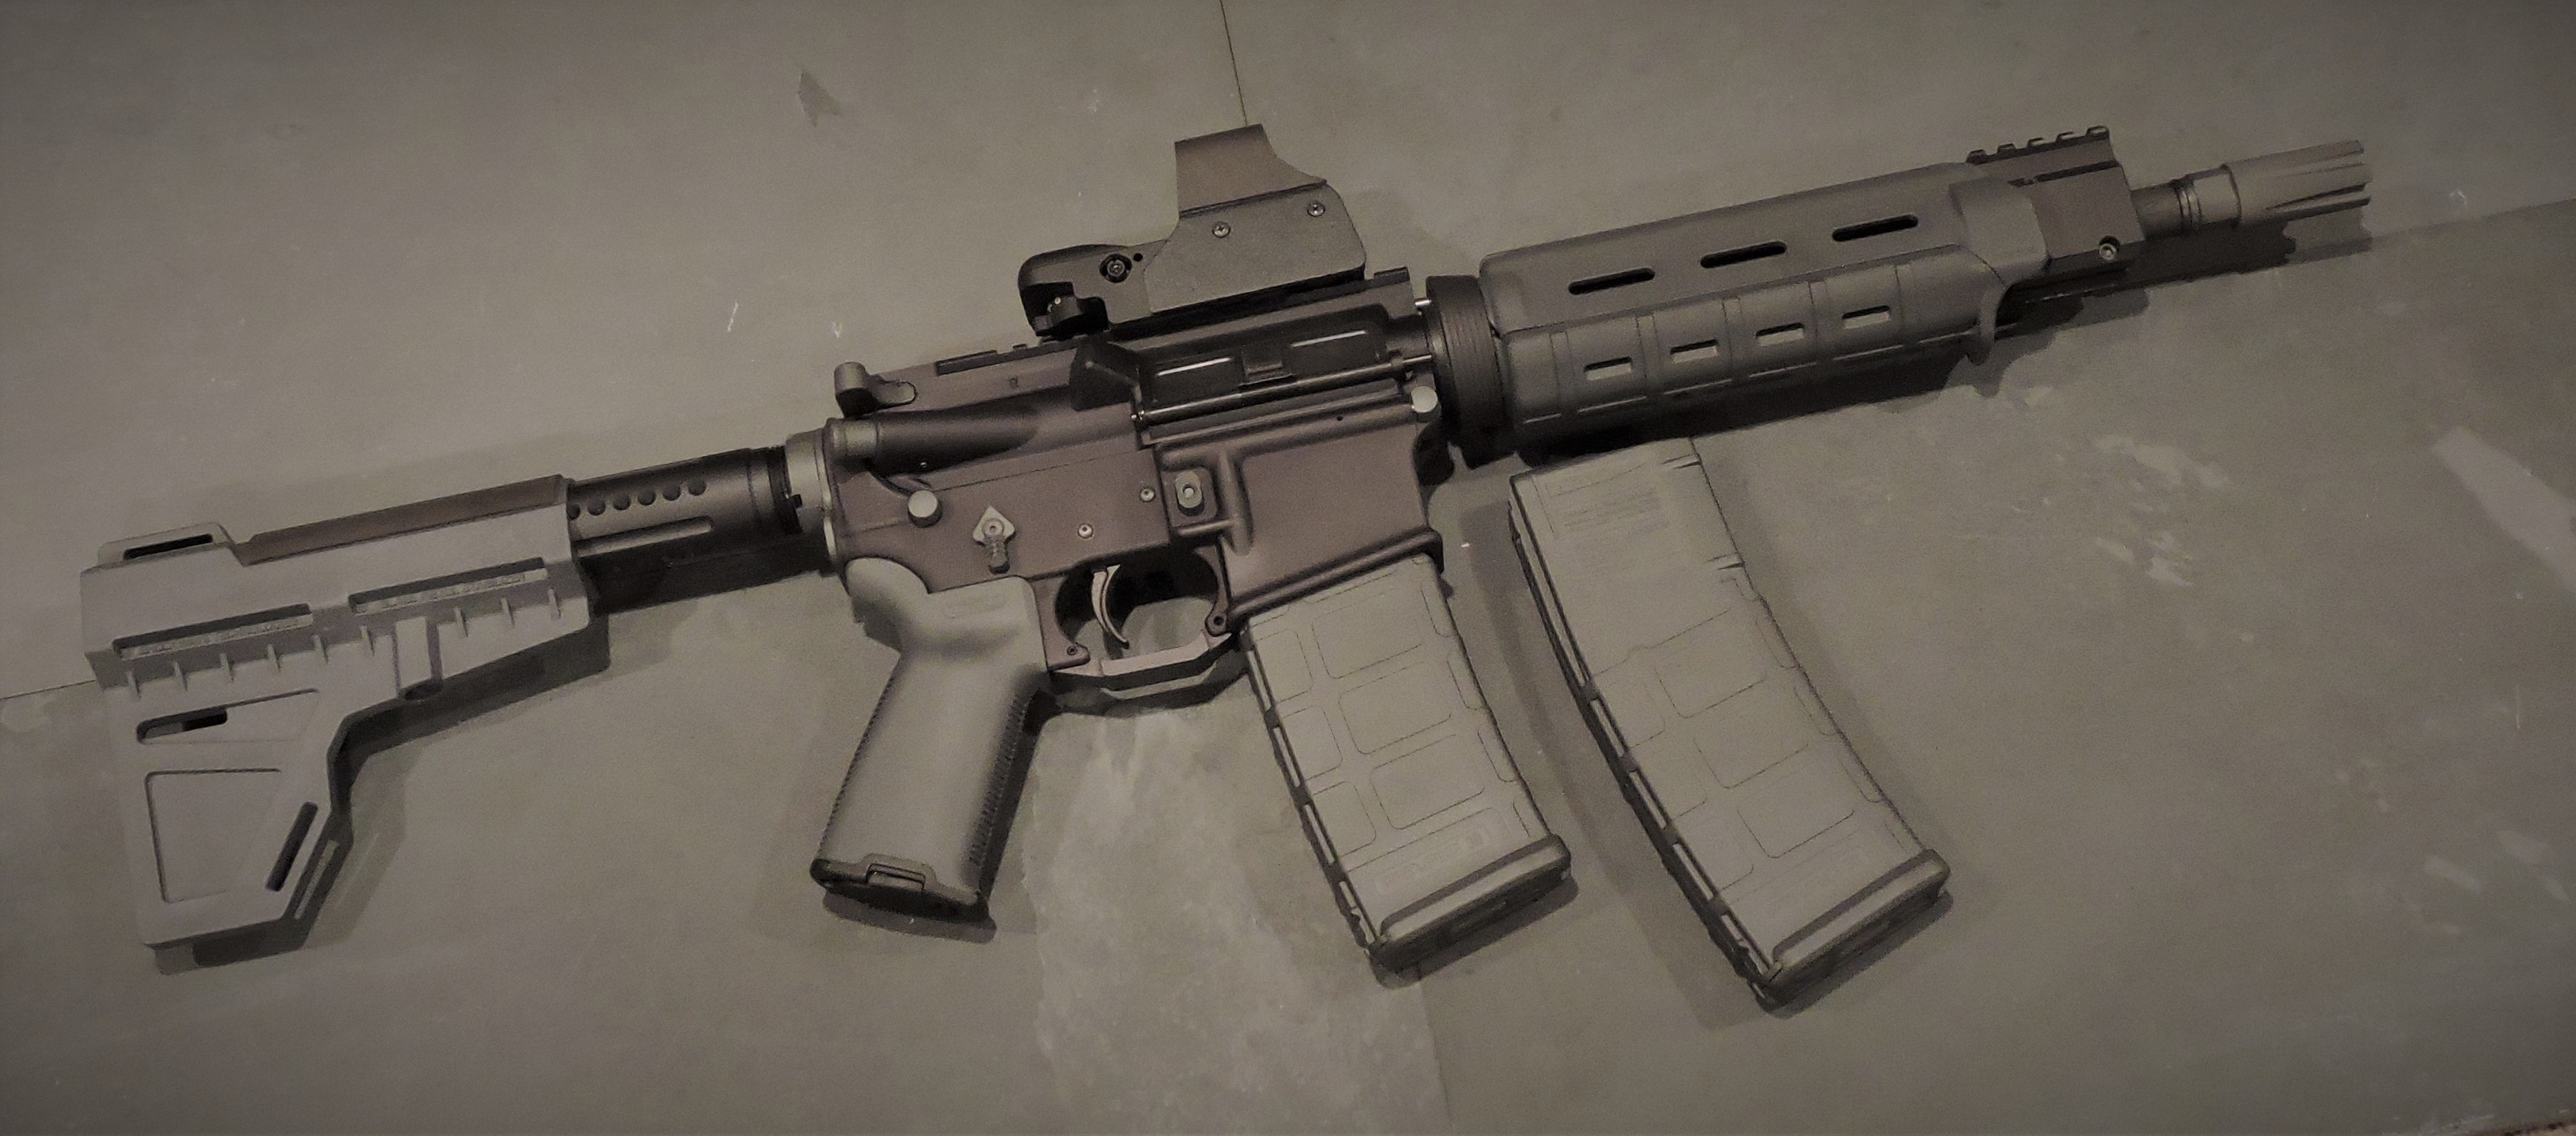 SNIPER STEALTH GREY AR-15, AR-10 (LR-308) AND M4 PARTS